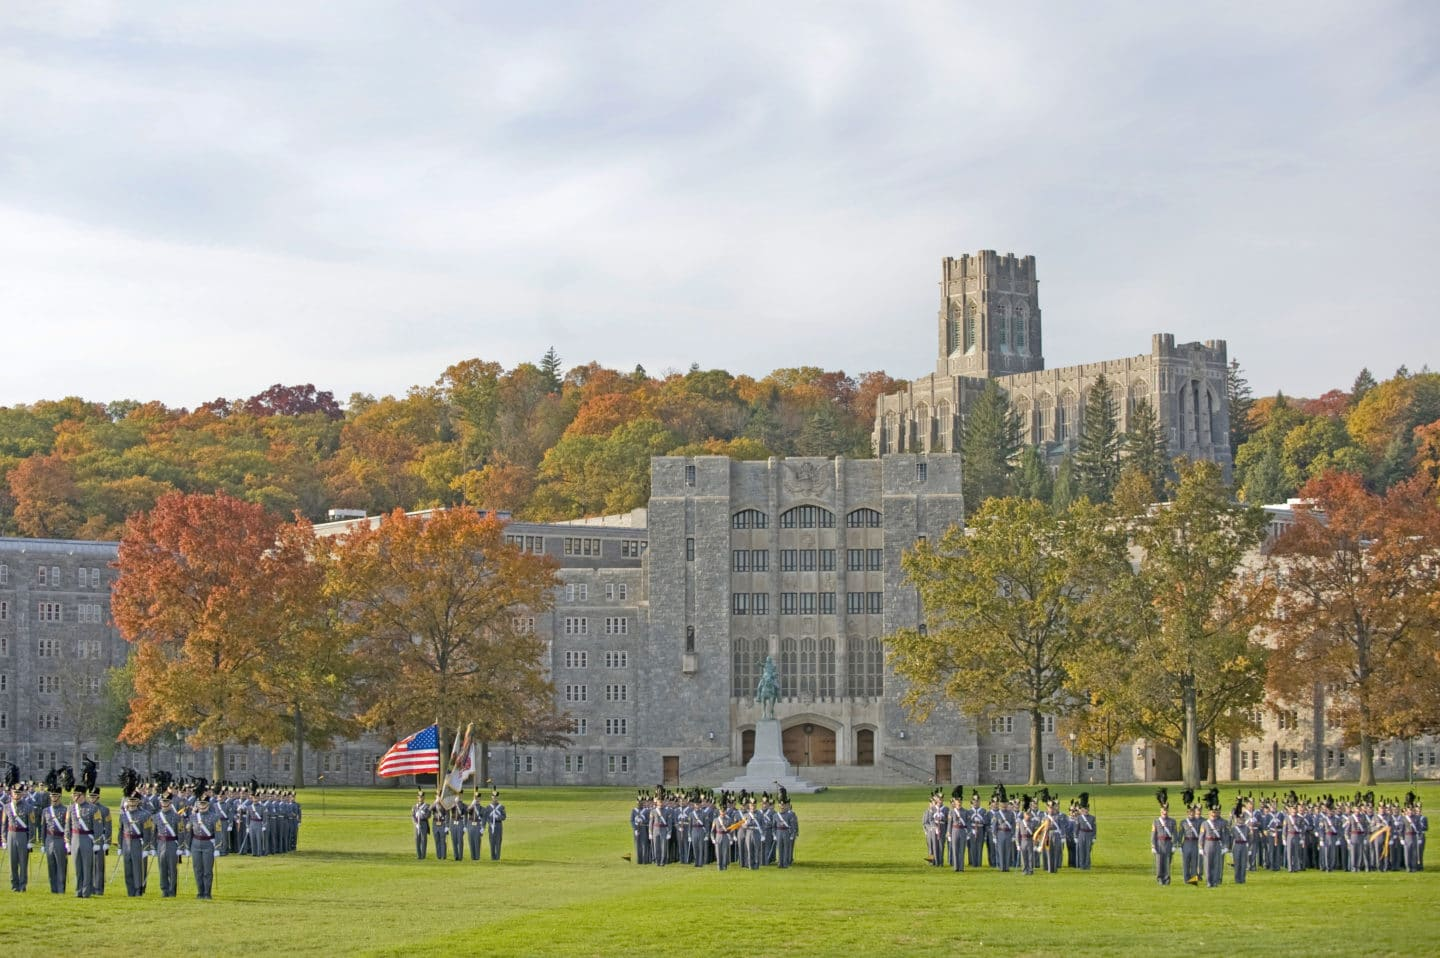 All You Need To Know About West Point Academy - Sandboxx